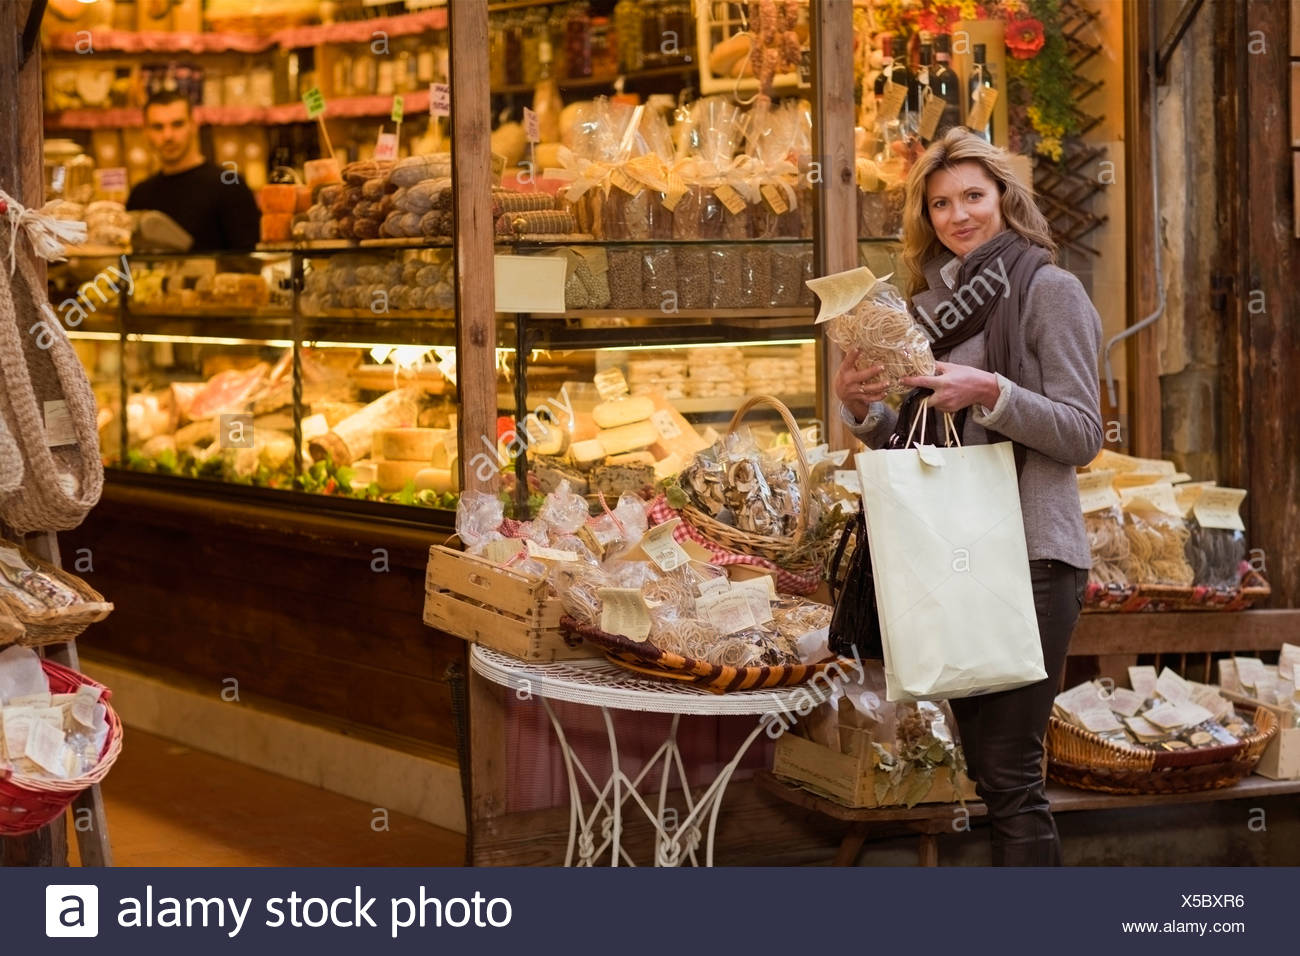 Woman in front of deli - Stock Image